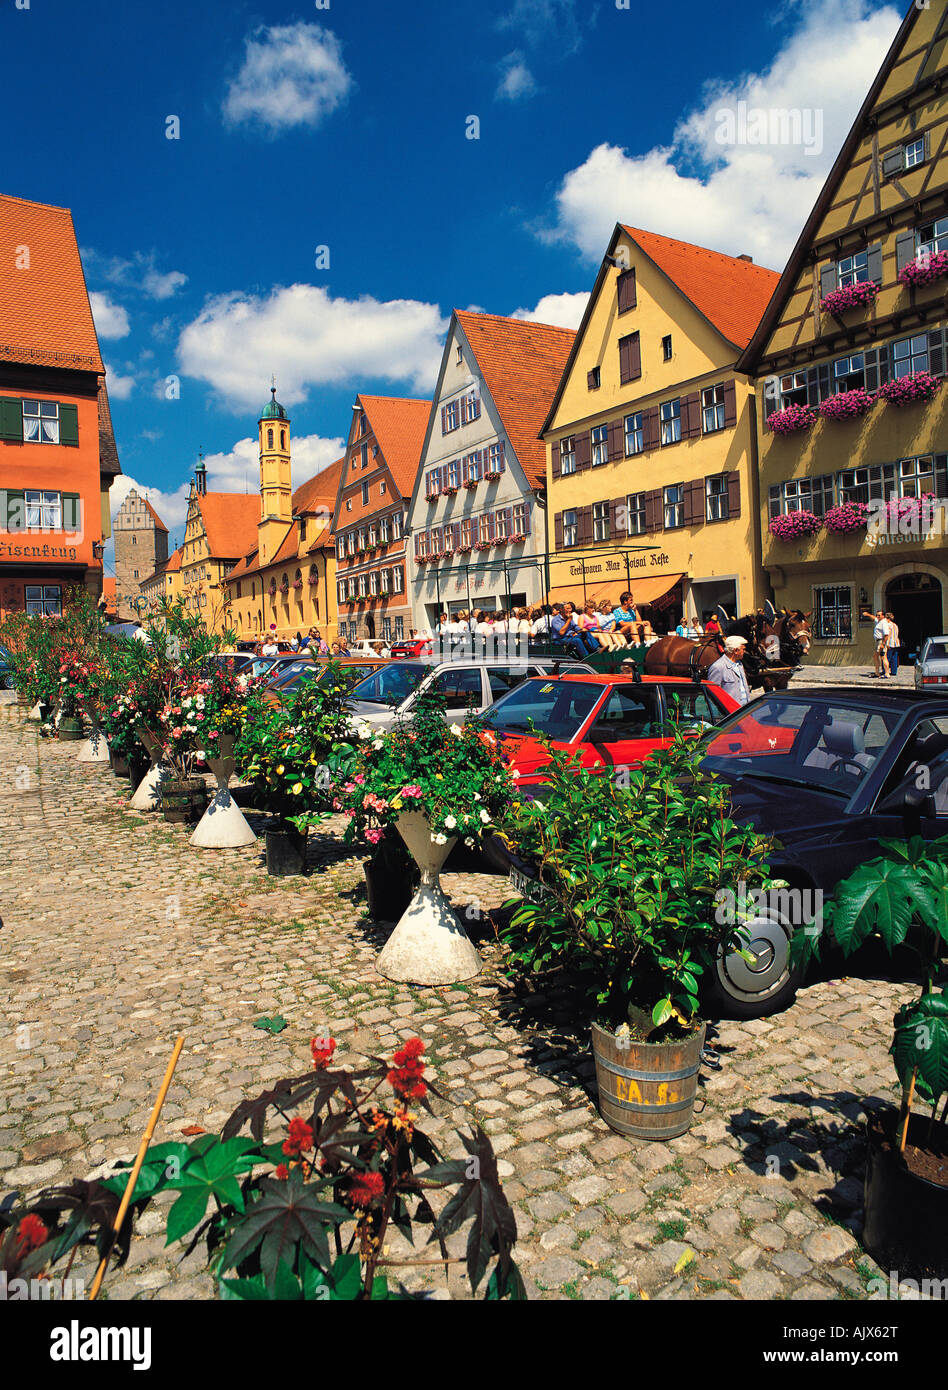 Germany. Dinkelsbuhl. Street scene with parked cars and old buildings. - Stock Image